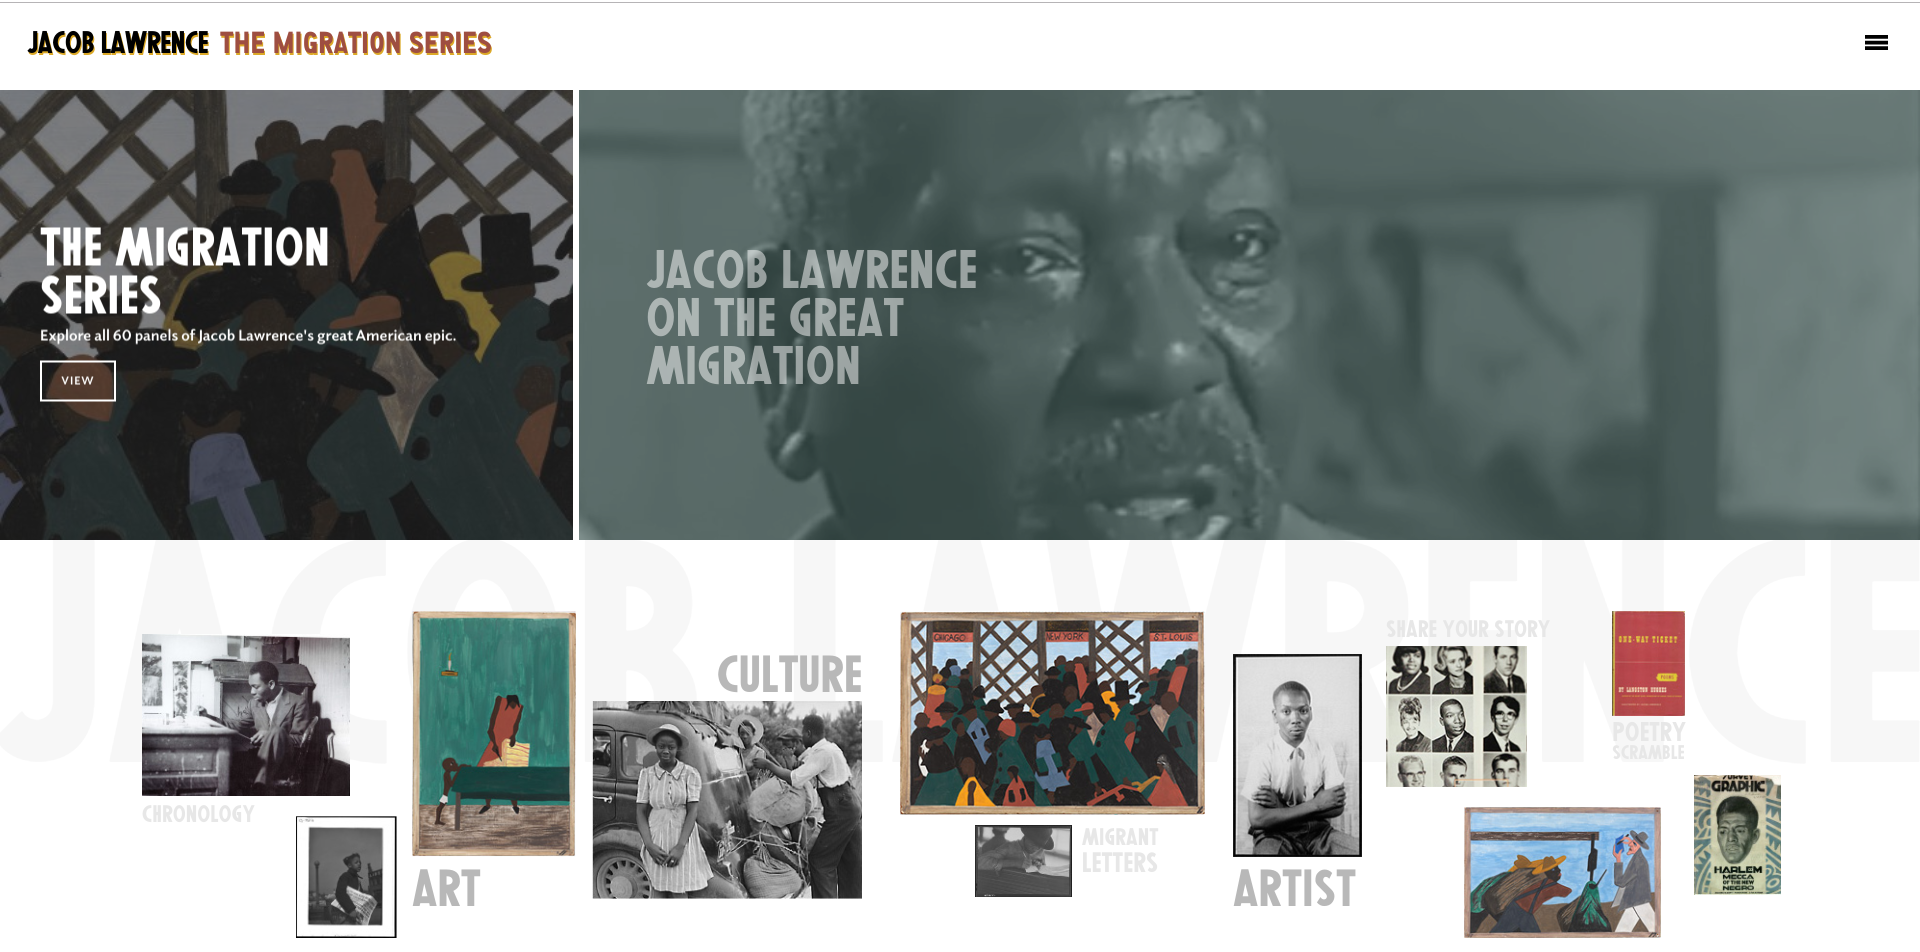 Phillips Collection | Jacob Lawrence: The Migration Series